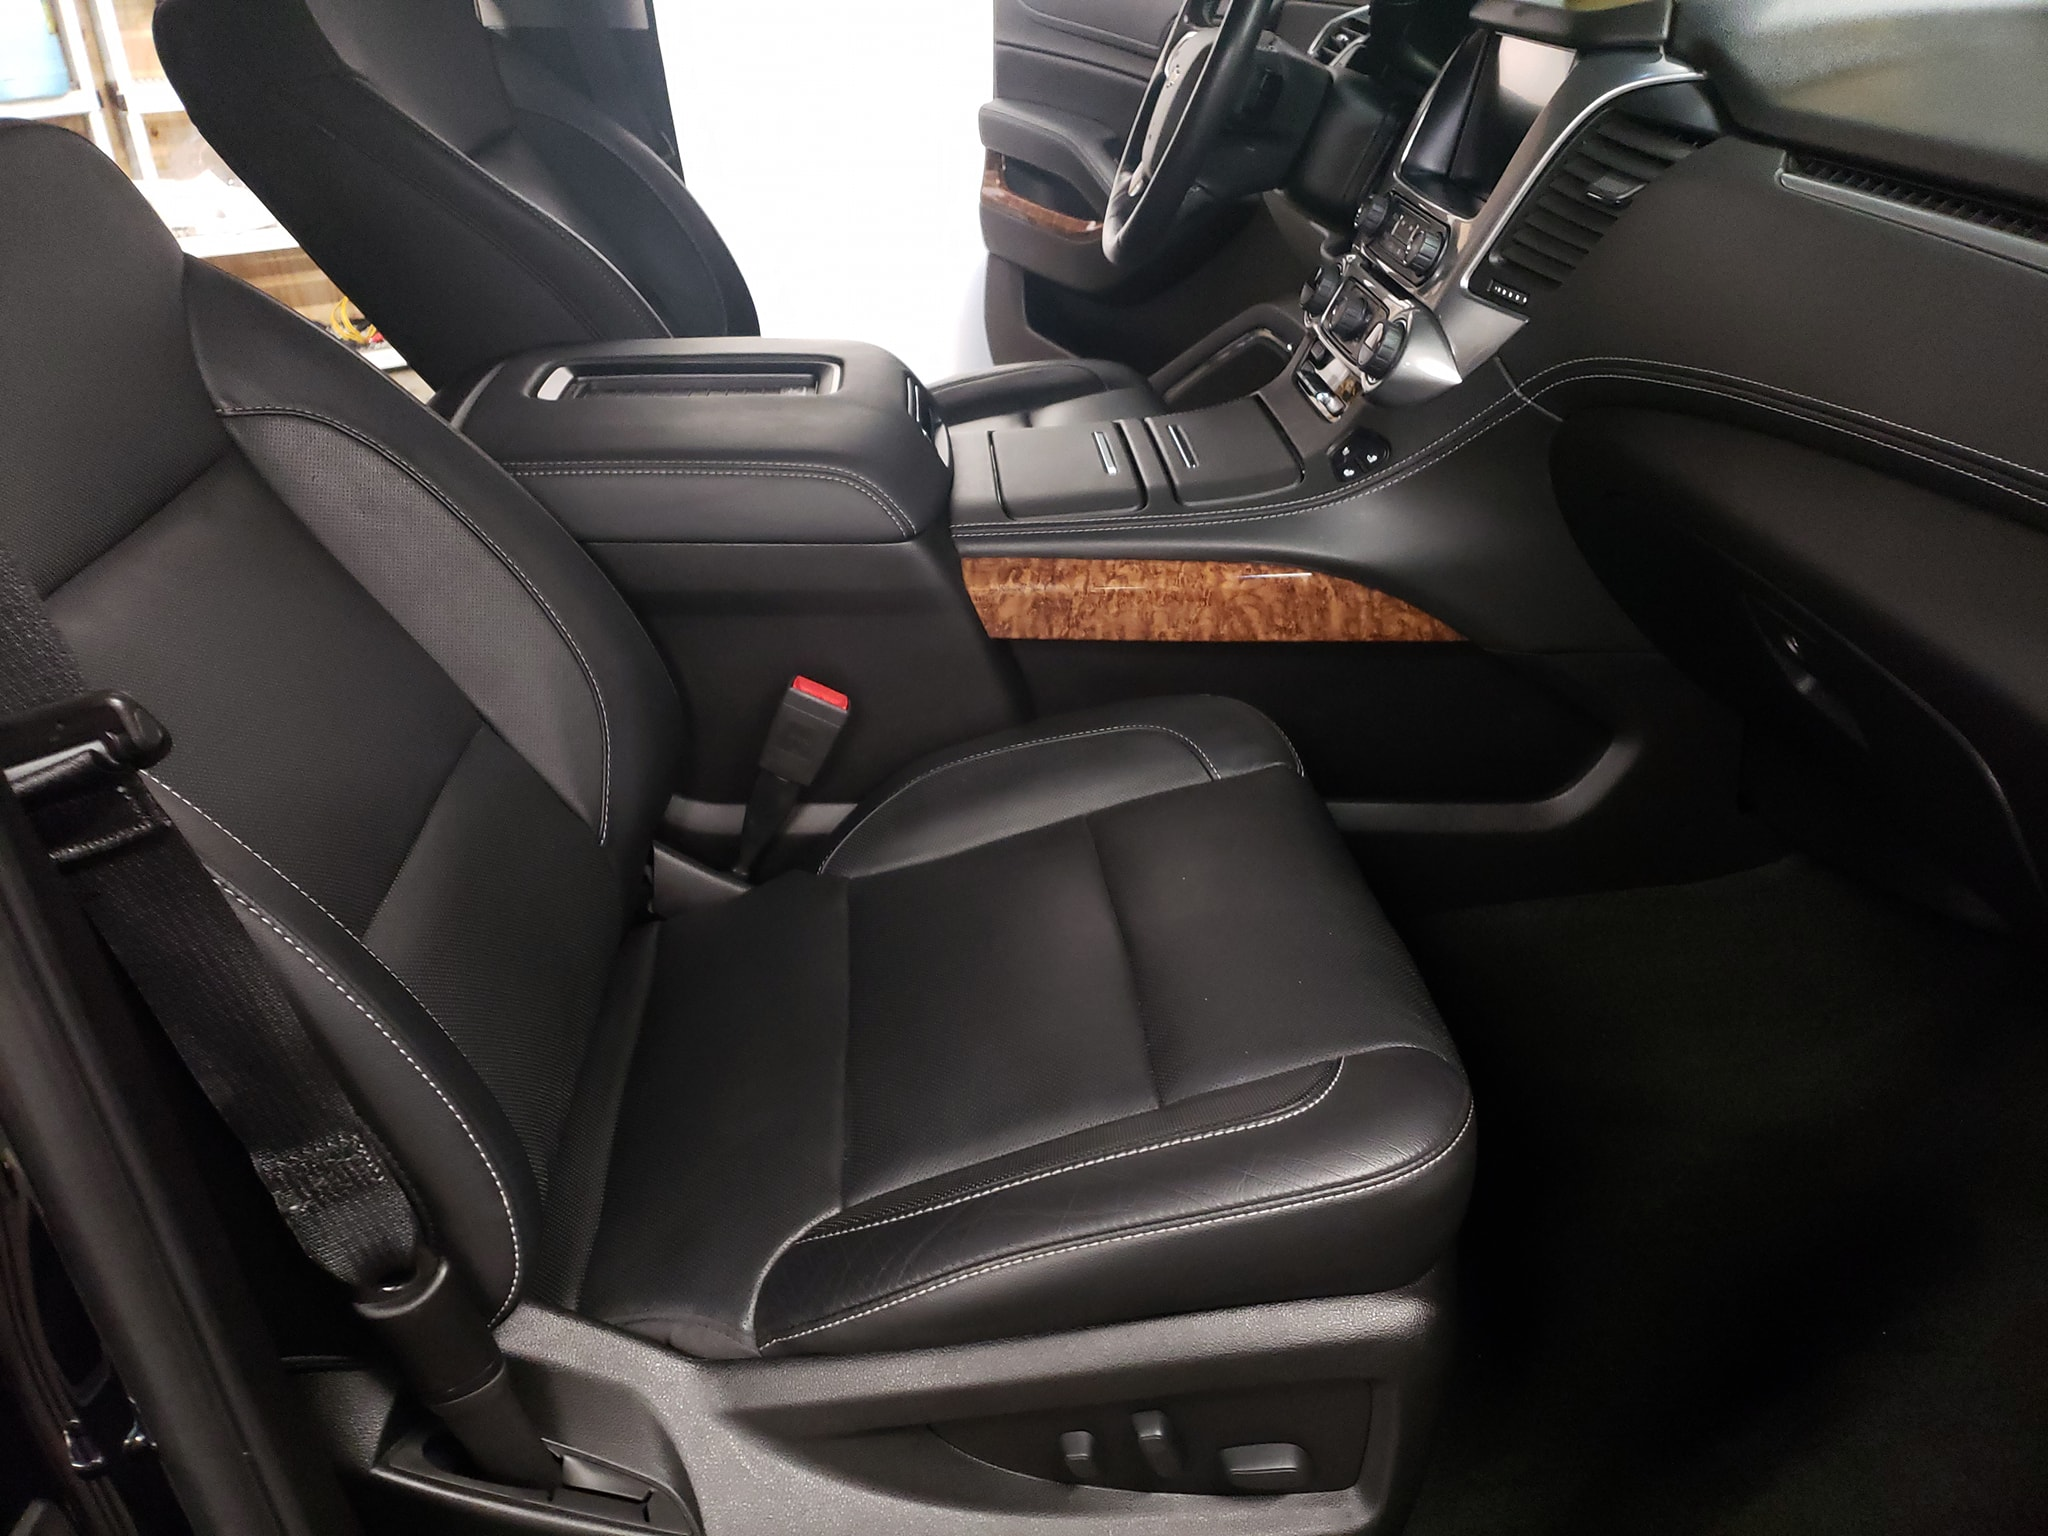 photo of car interior passenger side